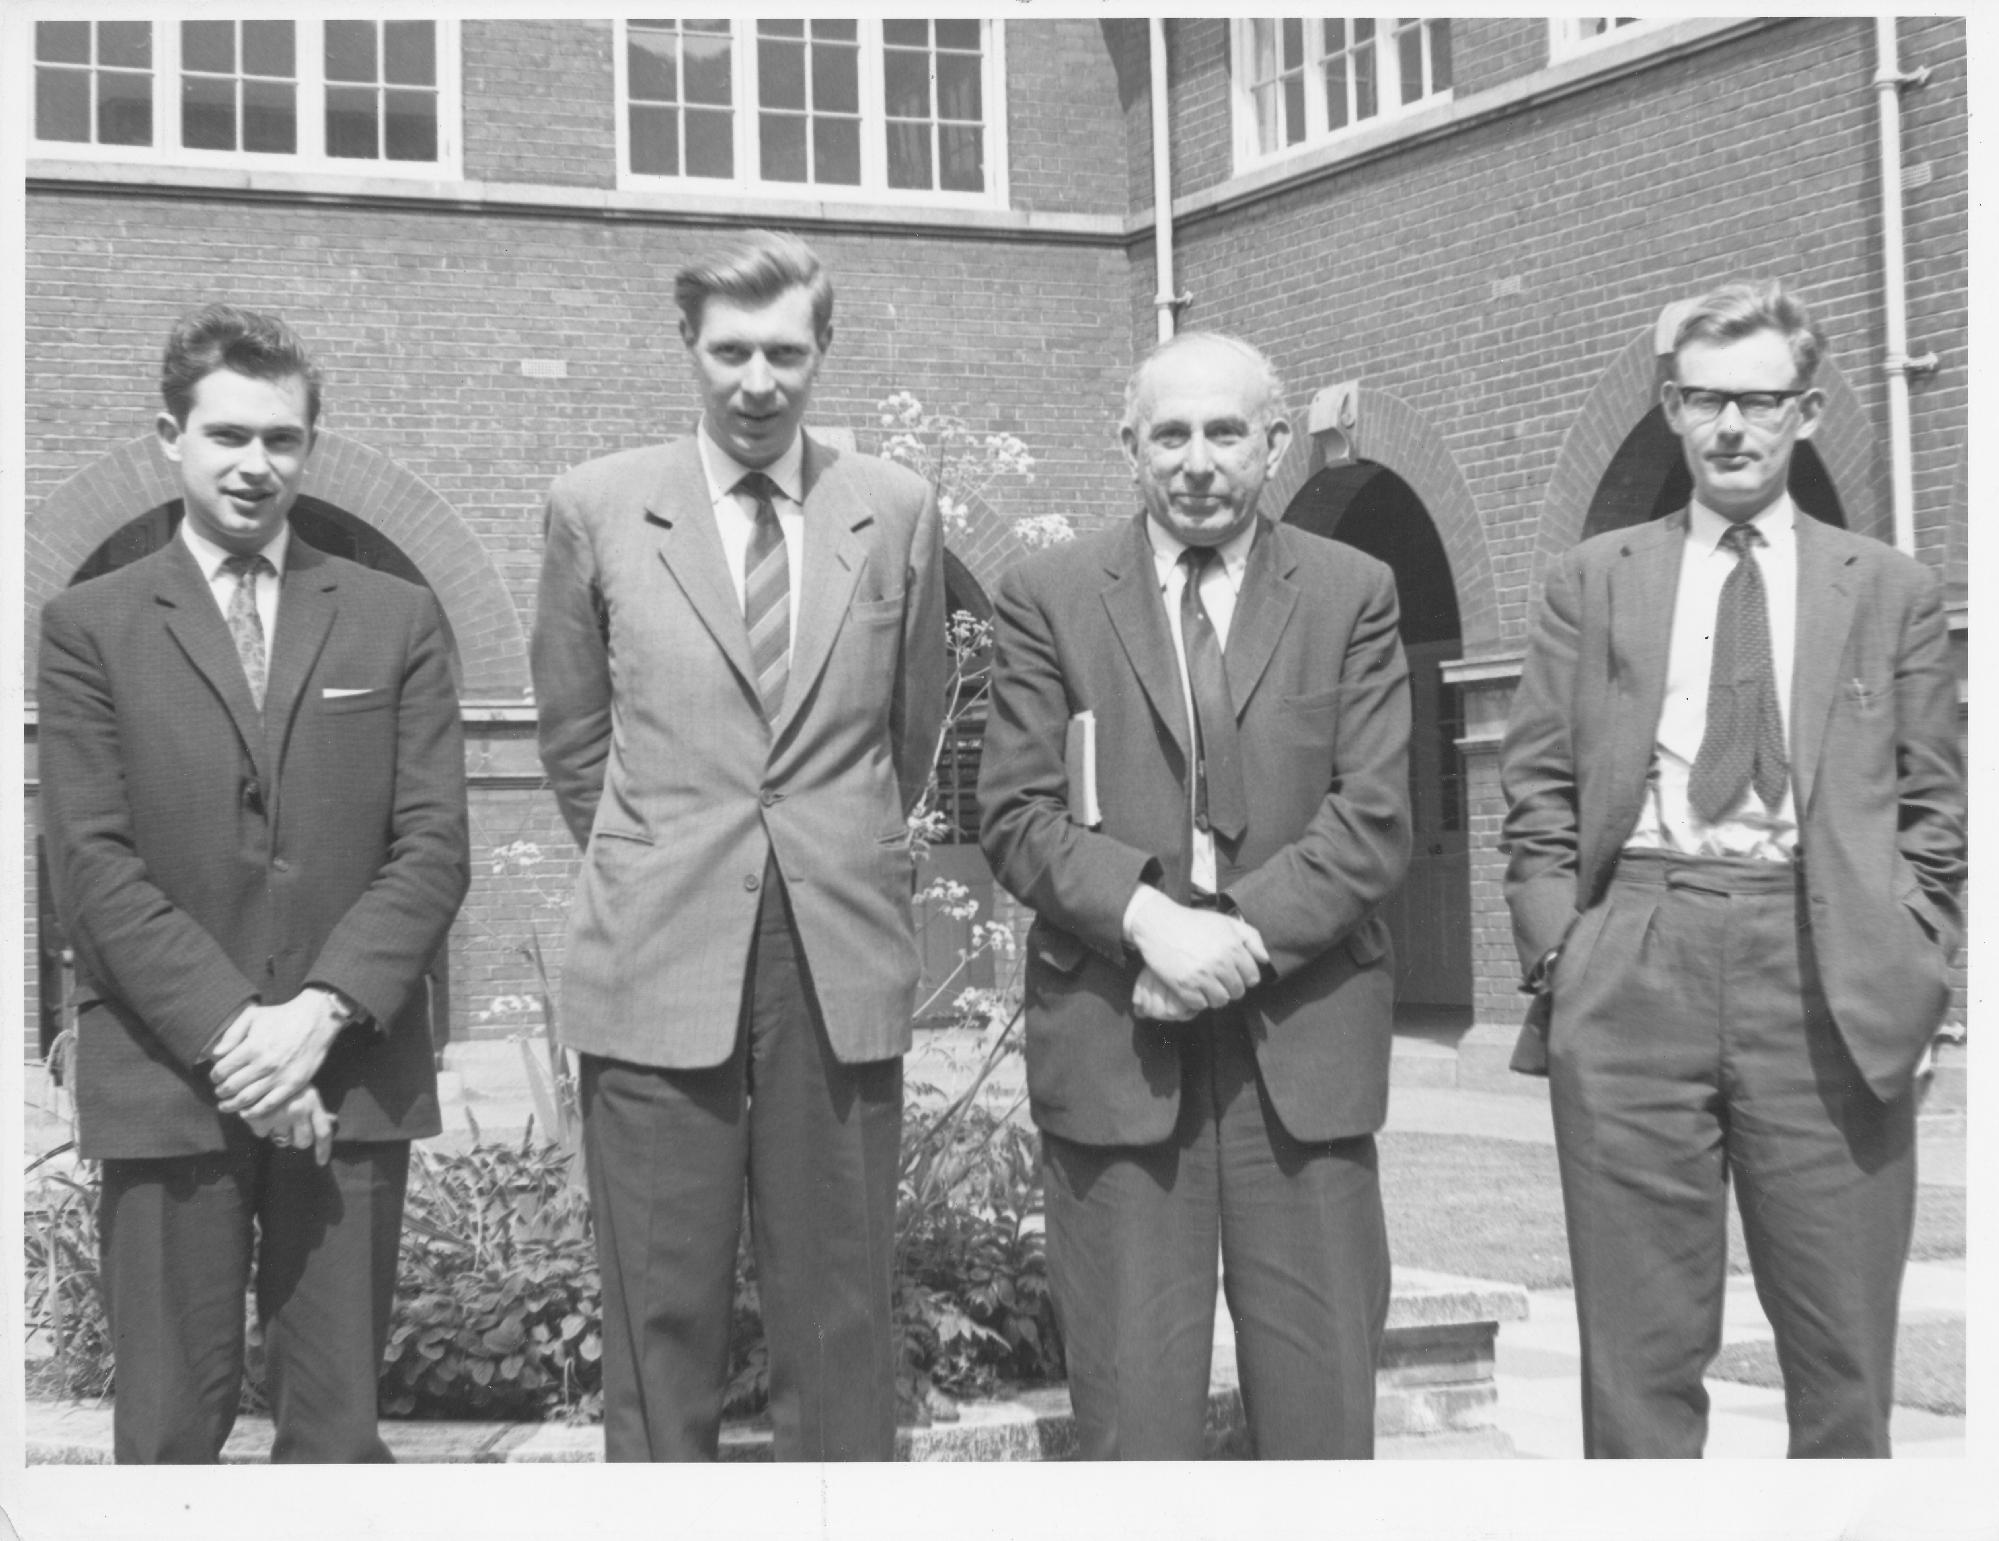 Owen Hindle, Michael Franklin, Harry Golombek and Michael Haygarth